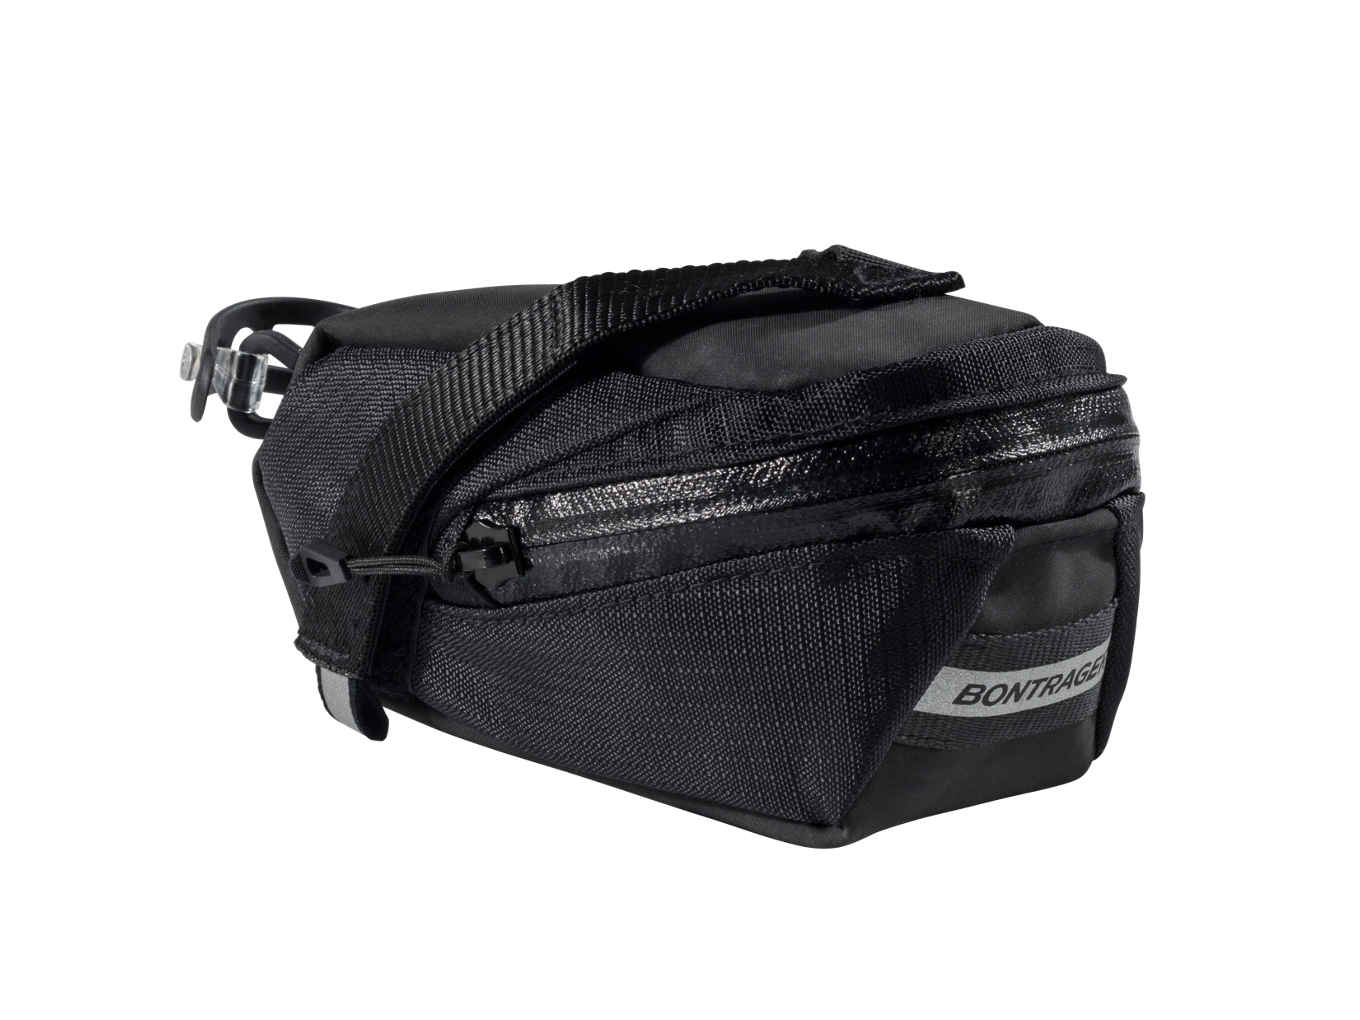 14409_A_1_Bontrager_Elite_Small_Seat_Pack.jpg